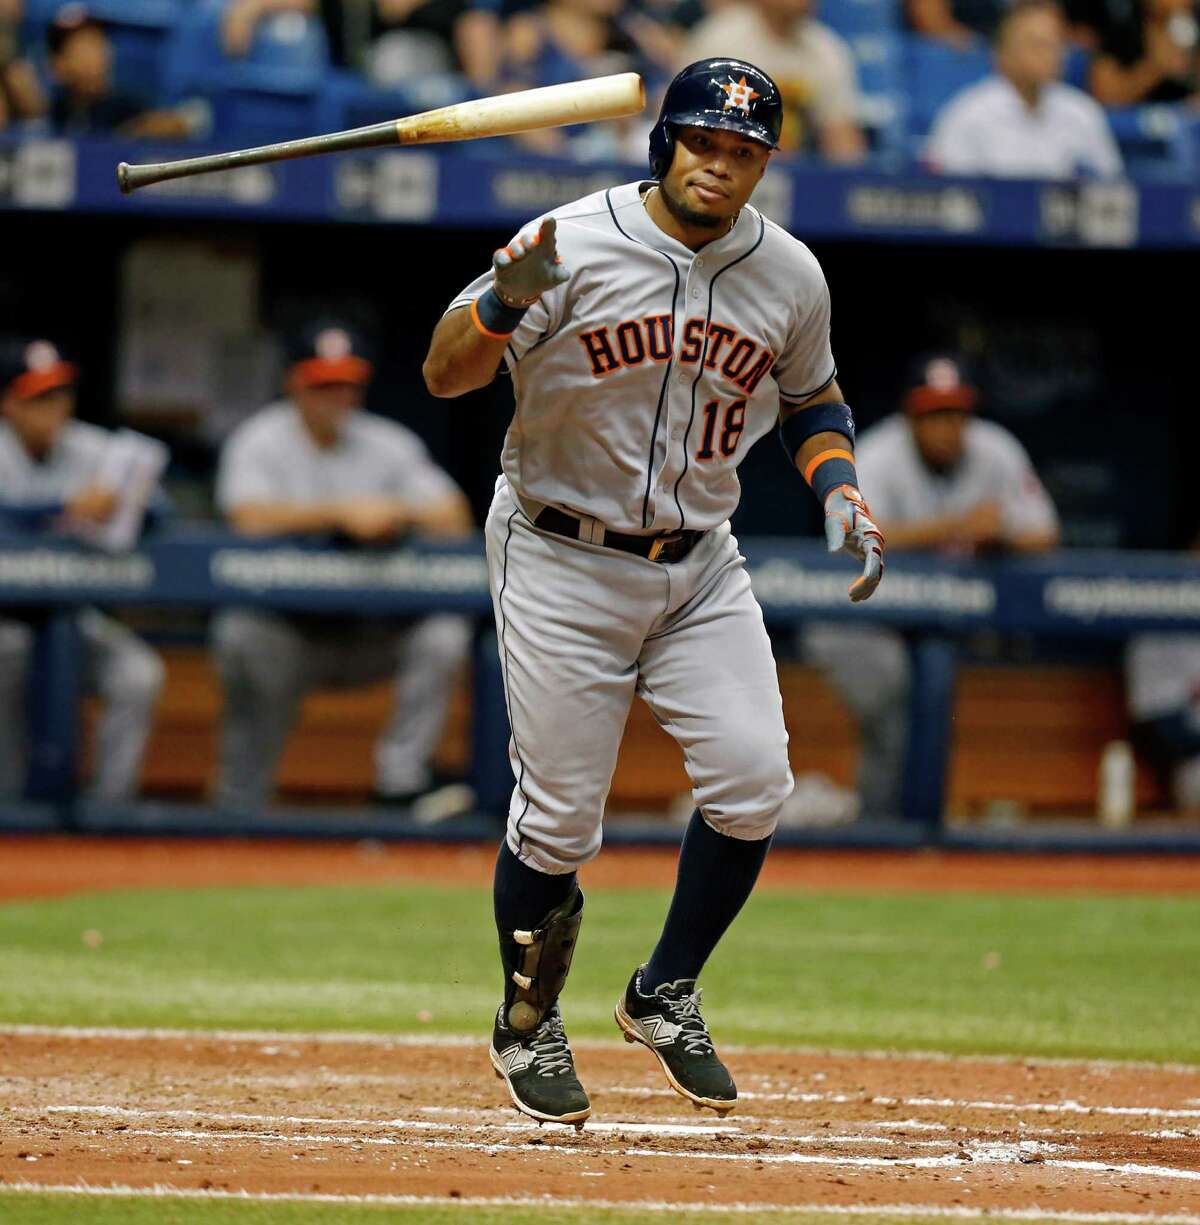 Although he went hitless in Sunday's 5-0 loss to the Rays, the Astros' Luis Valbuena has been among the AL's hottest third basemen at the plate.